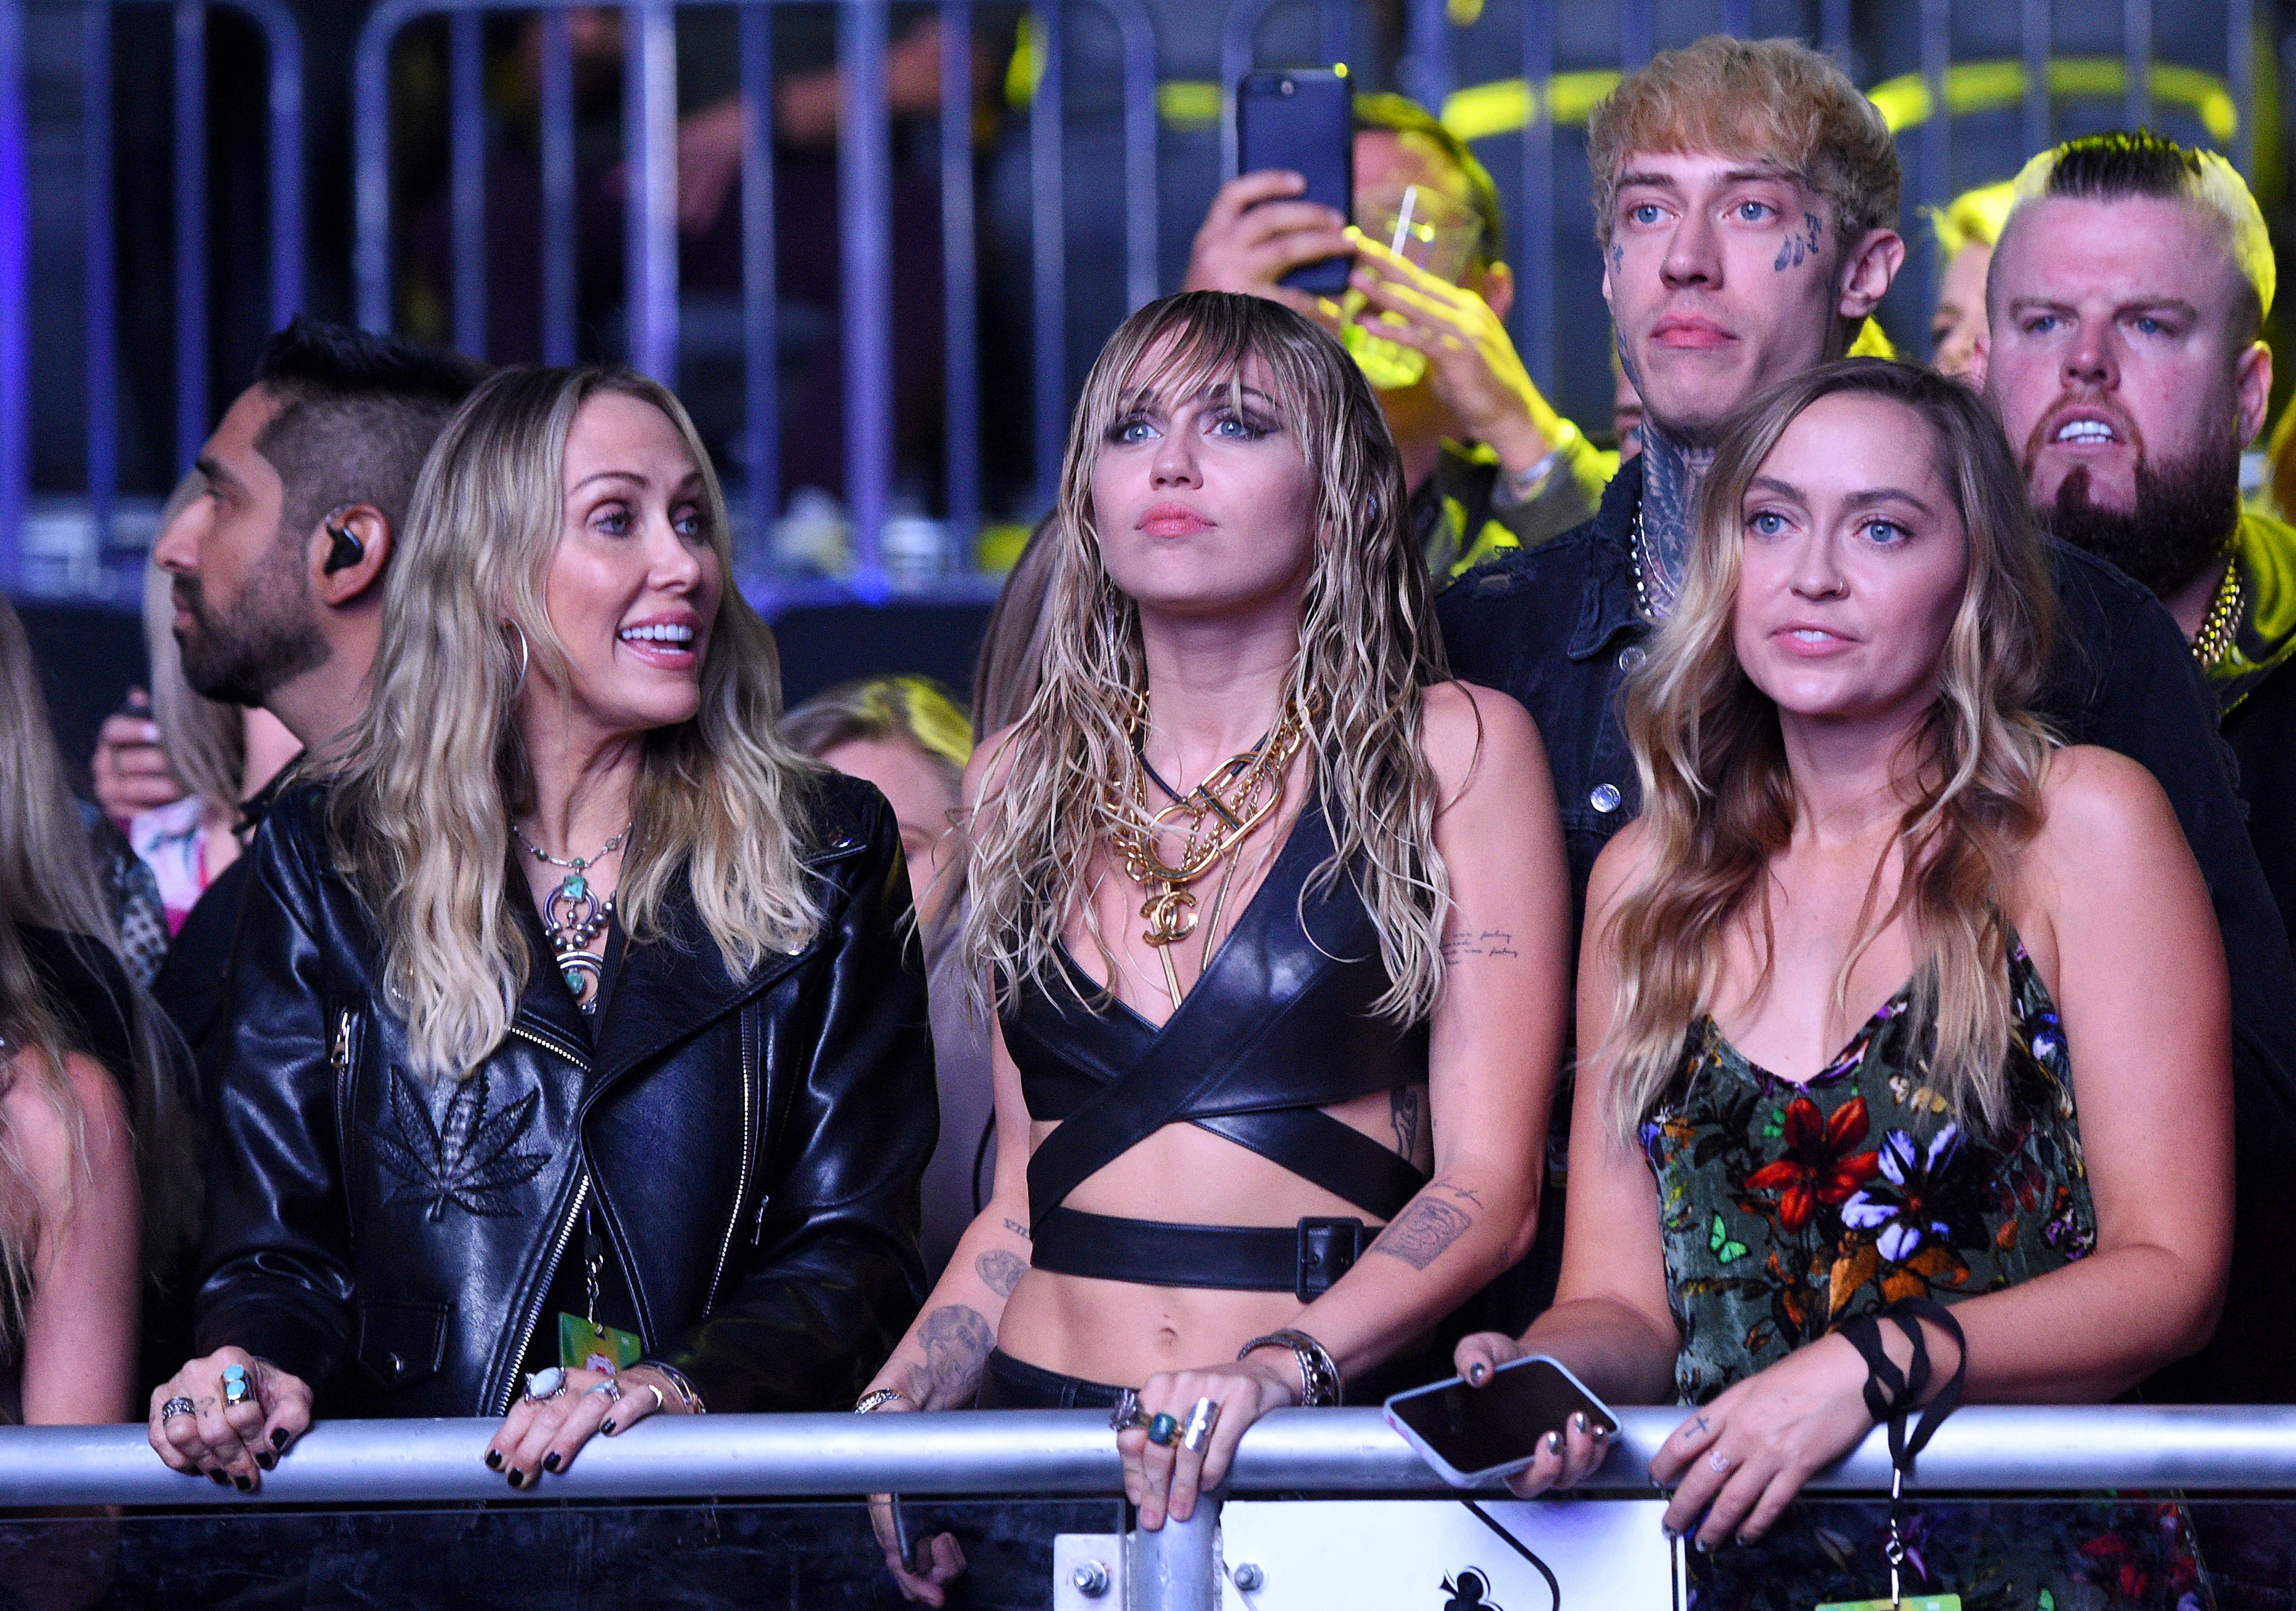 Miley Cyrus Hot Sister Brandi Told She Looks Like 1 Million Dollars Plus The Tip In Sexy Shirtless Pic